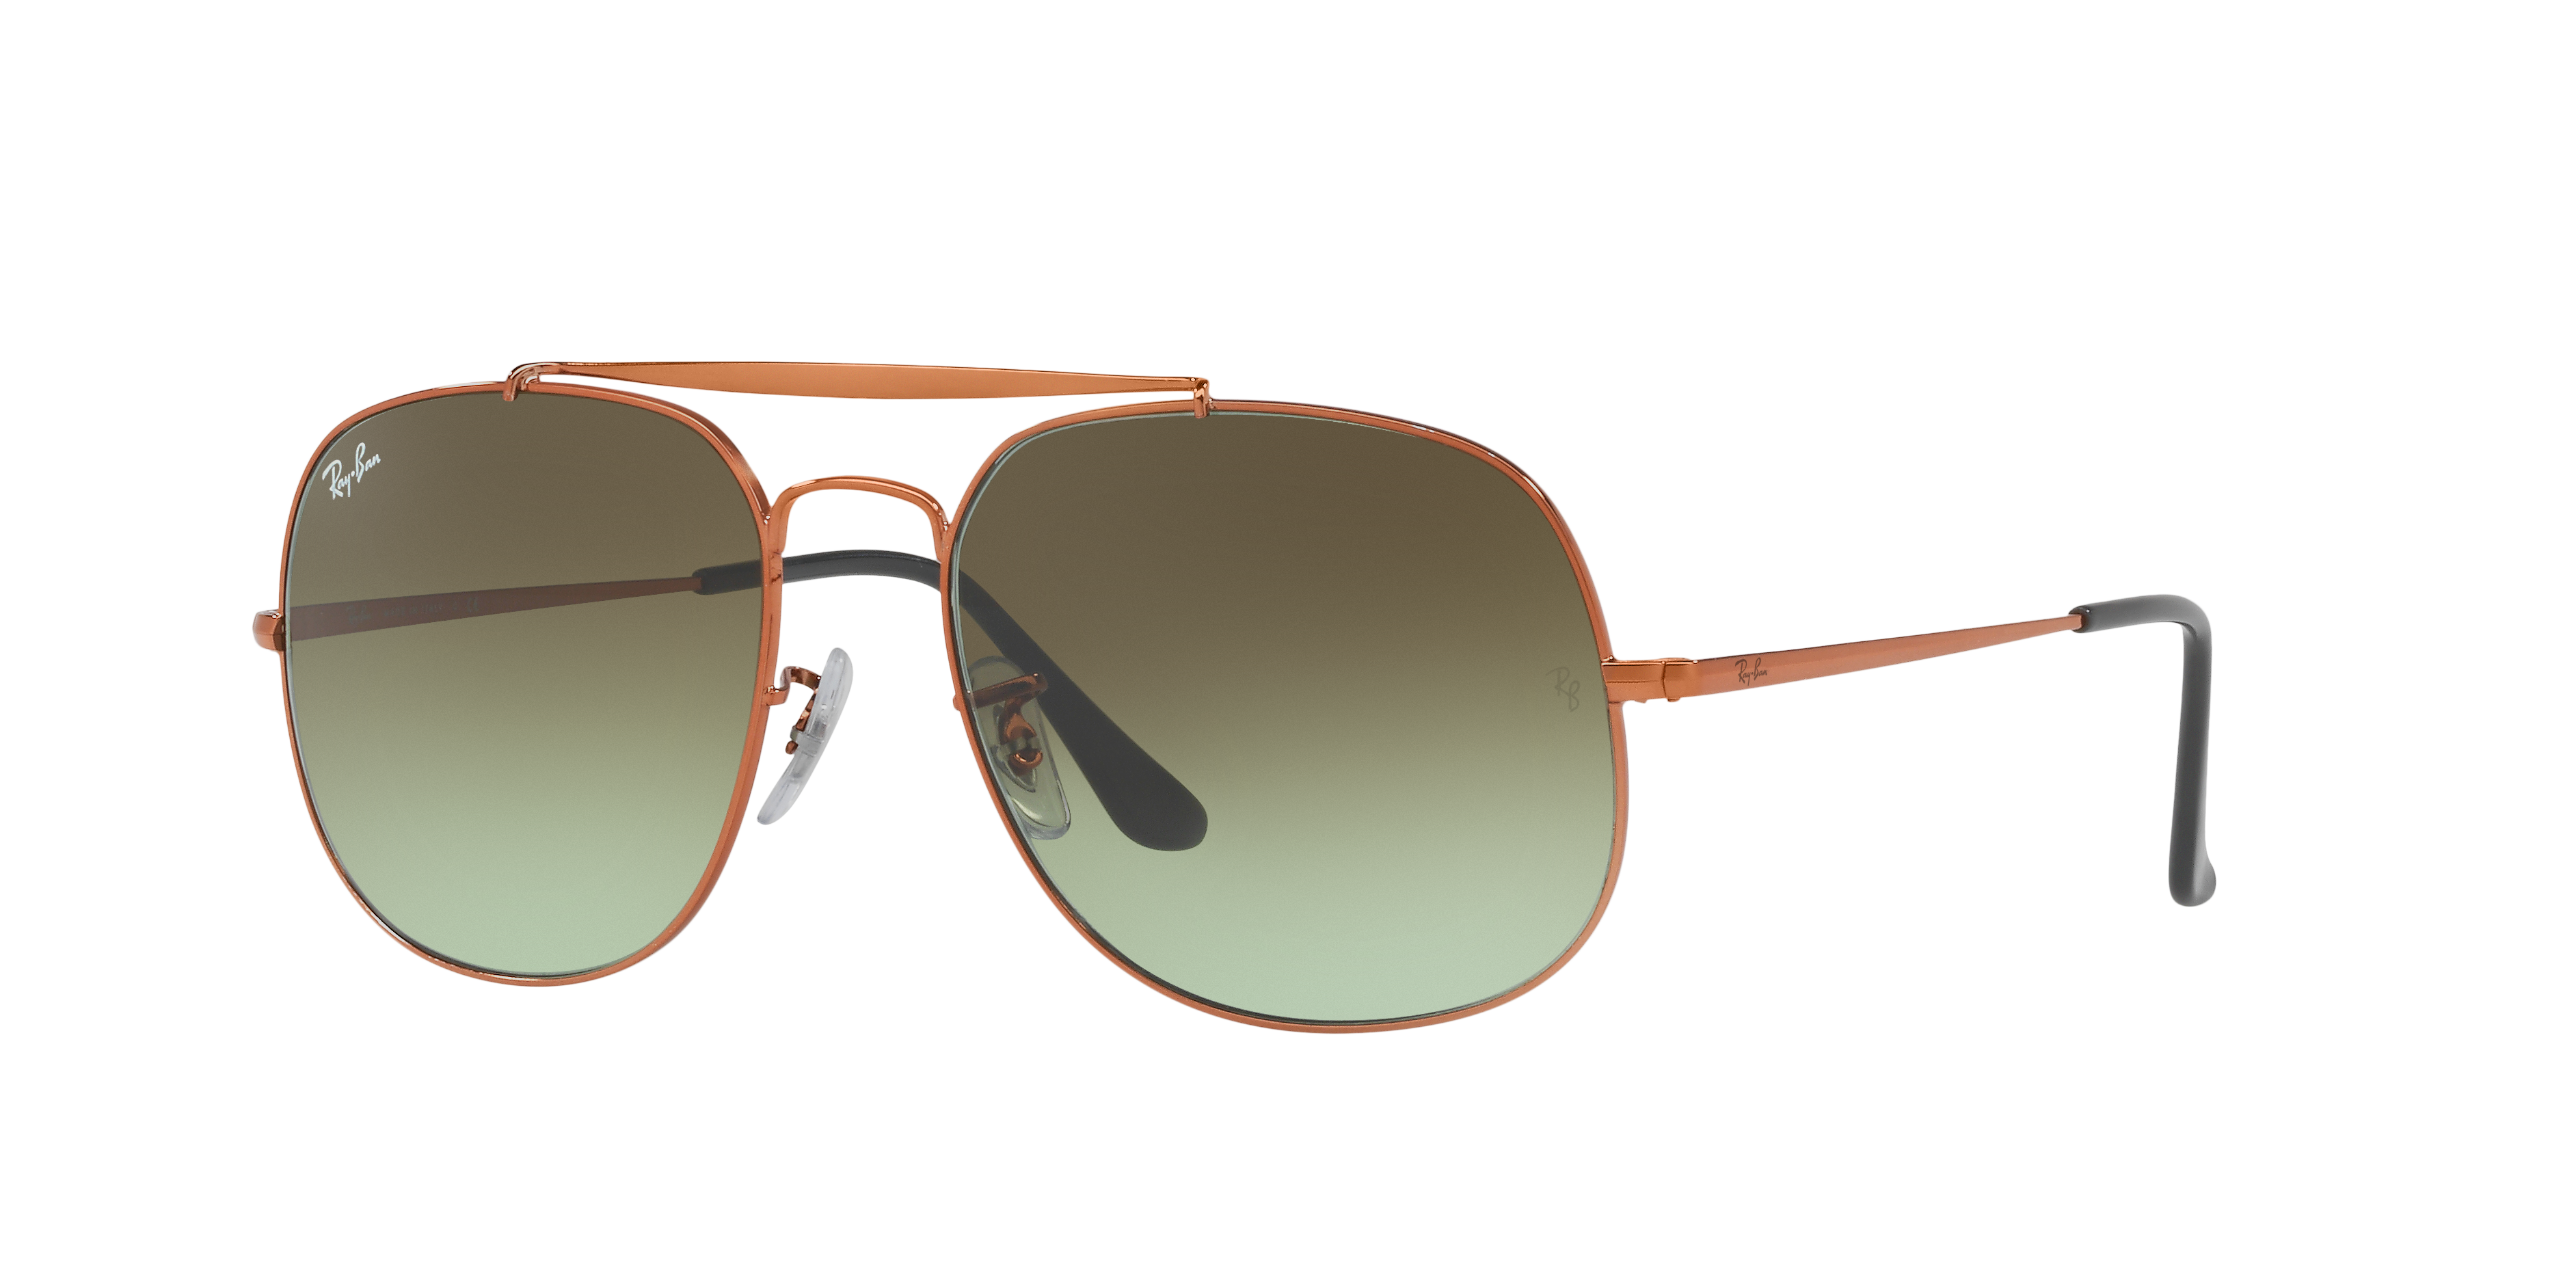 1a0d3fb9c0 Ray-Ban The General RB3561 9002A6 57 - Oculux